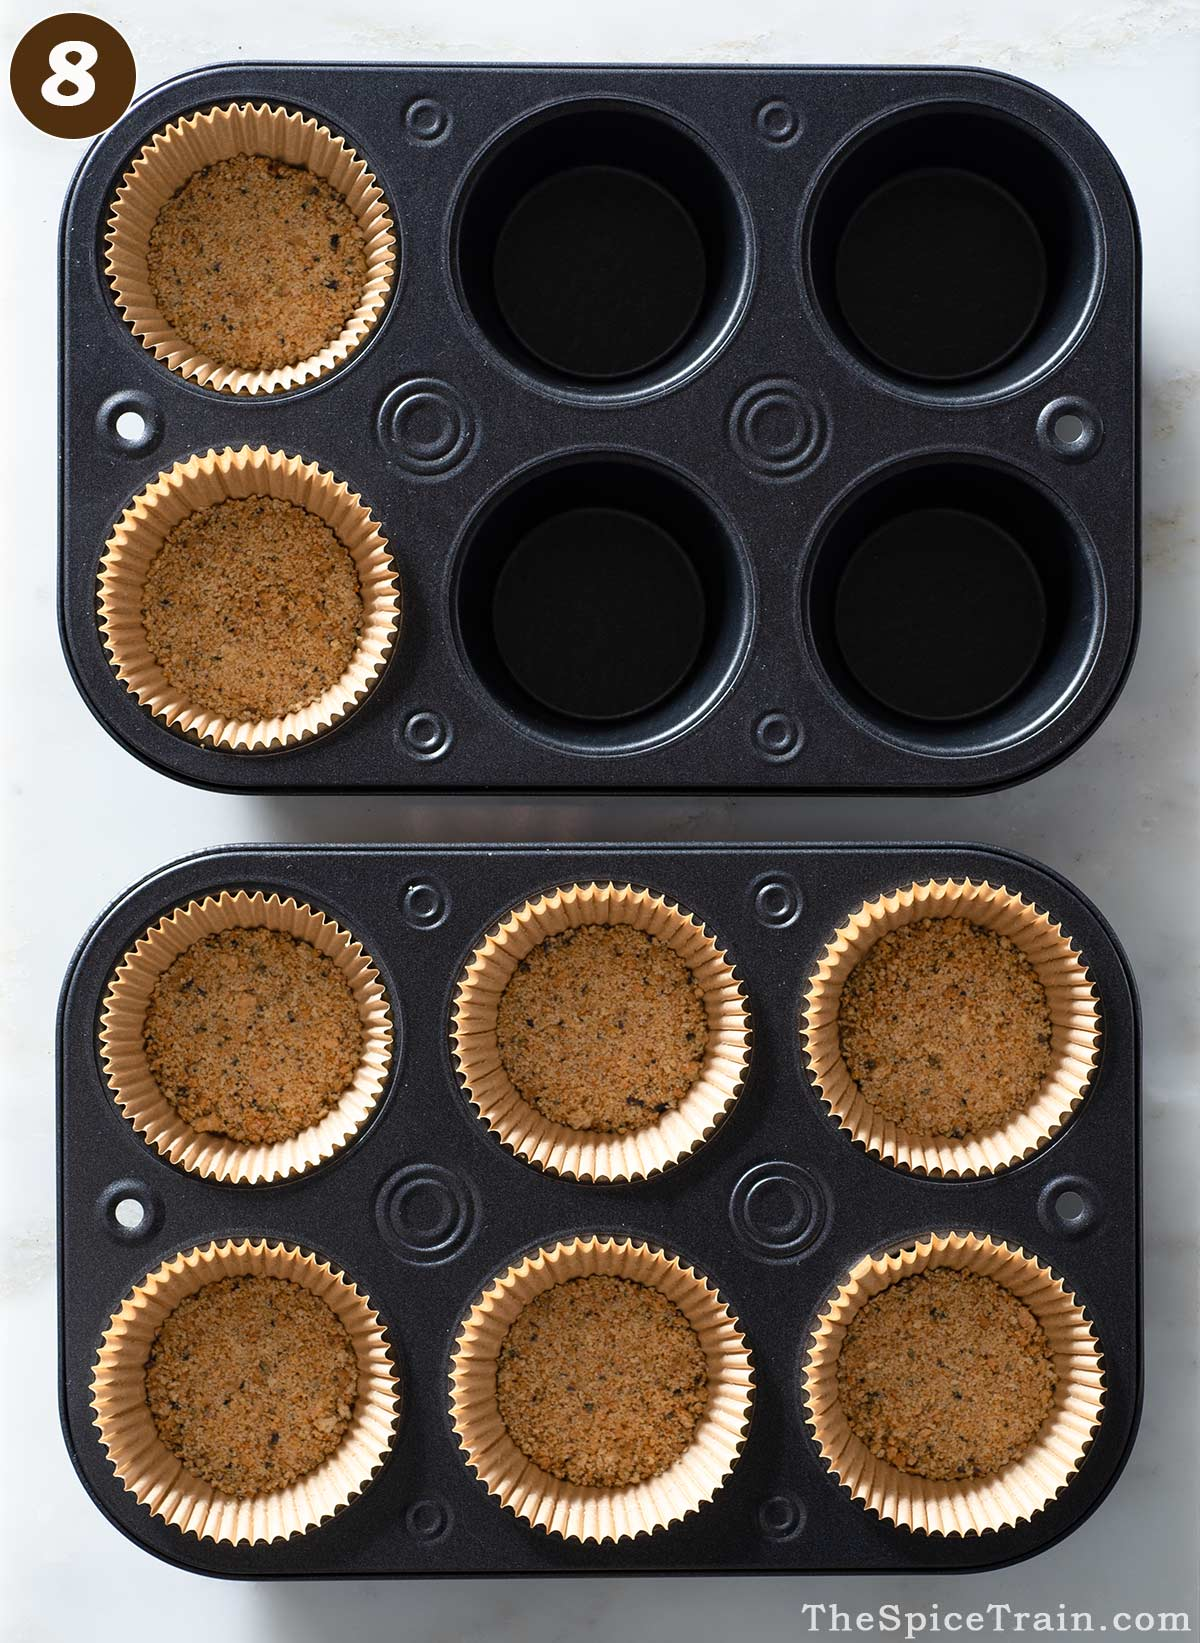 Lavender graham cracker crusts in muffin tins.